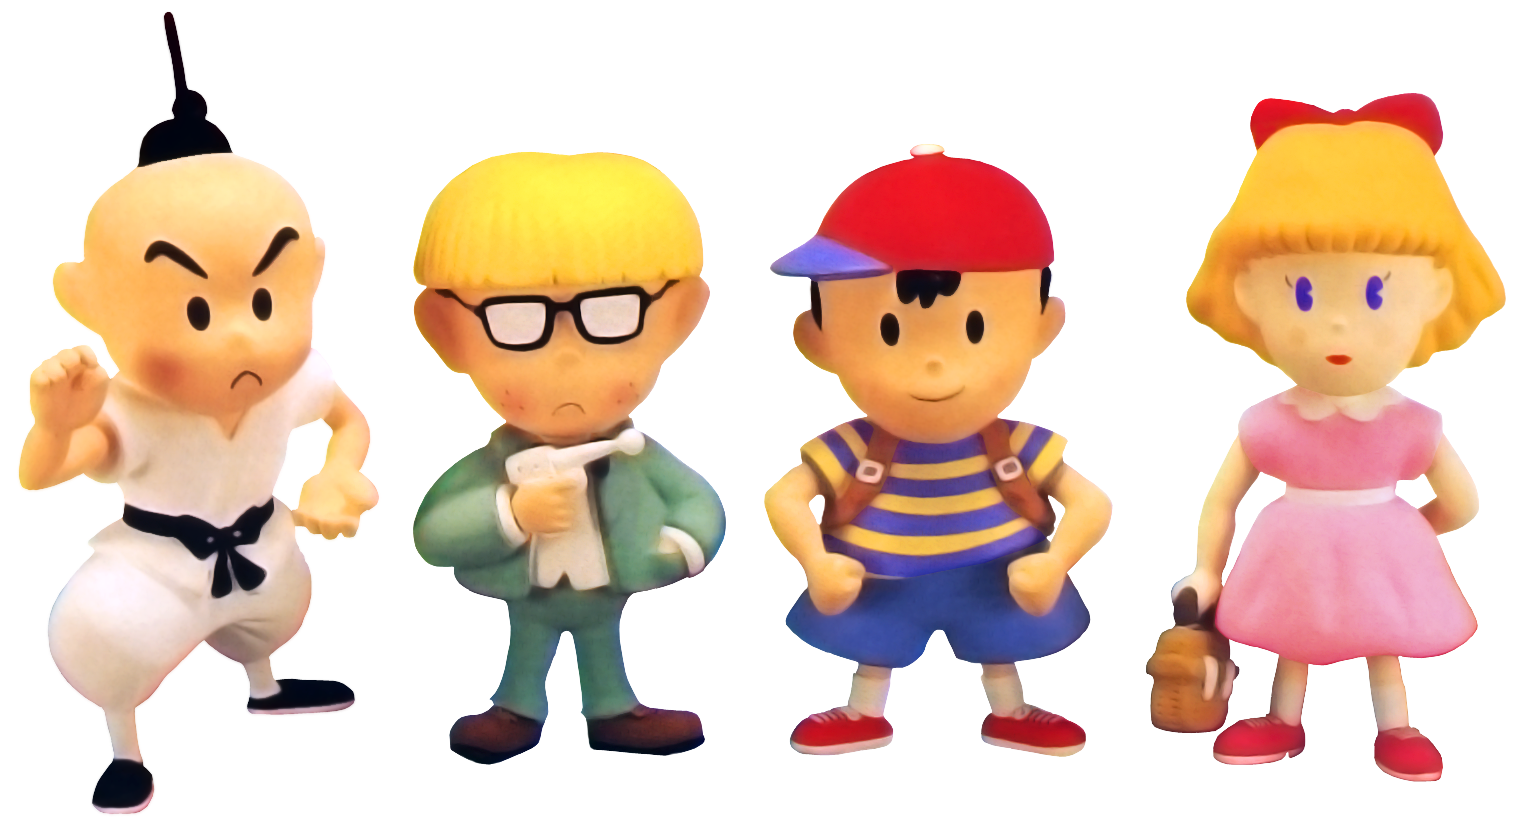 earthbound-chosen-four-clay-models